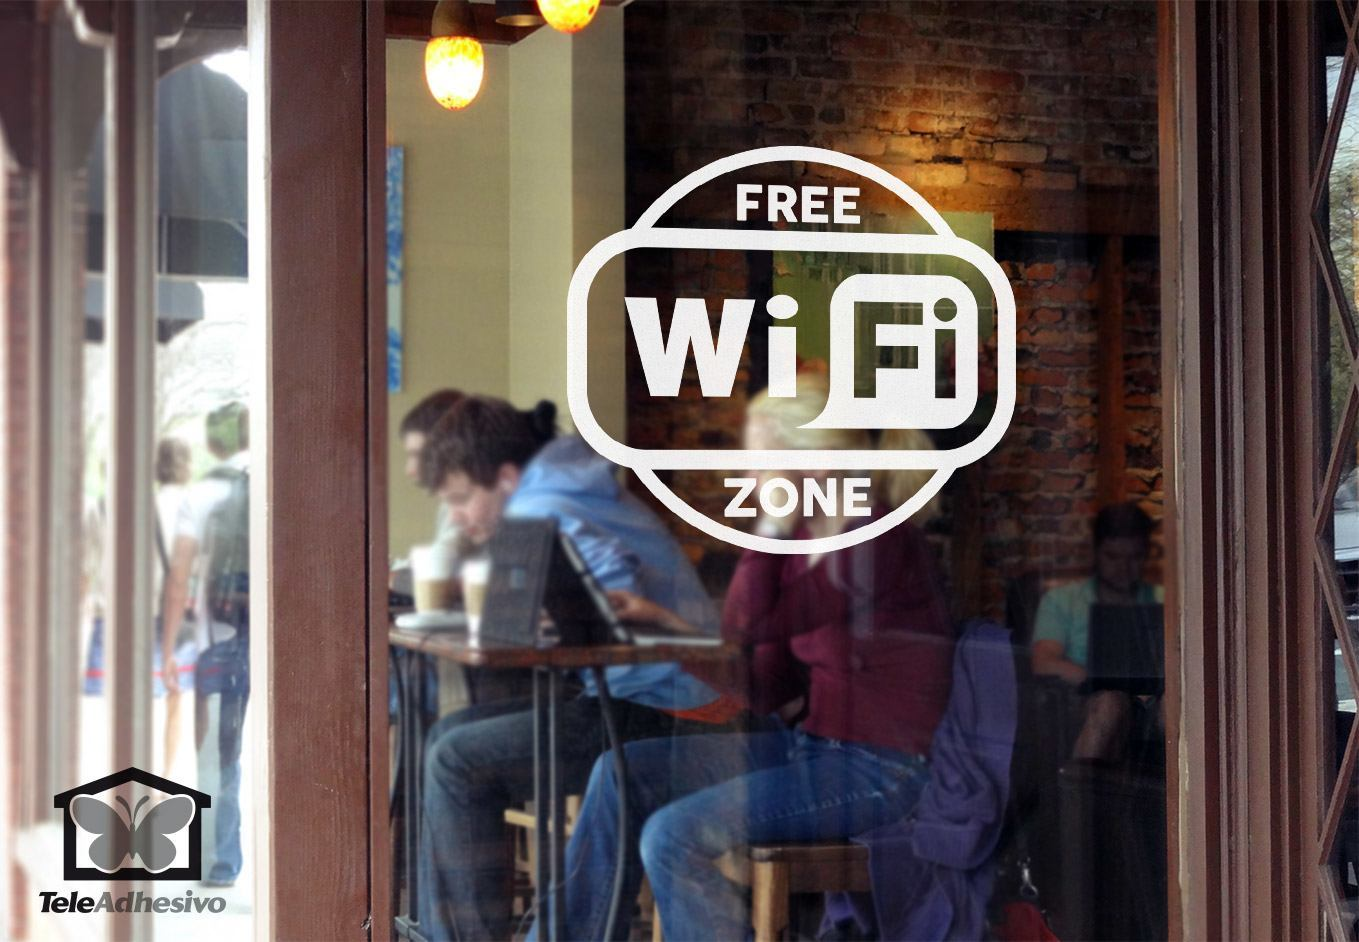 Wandtattoos: Free Wifi Zone